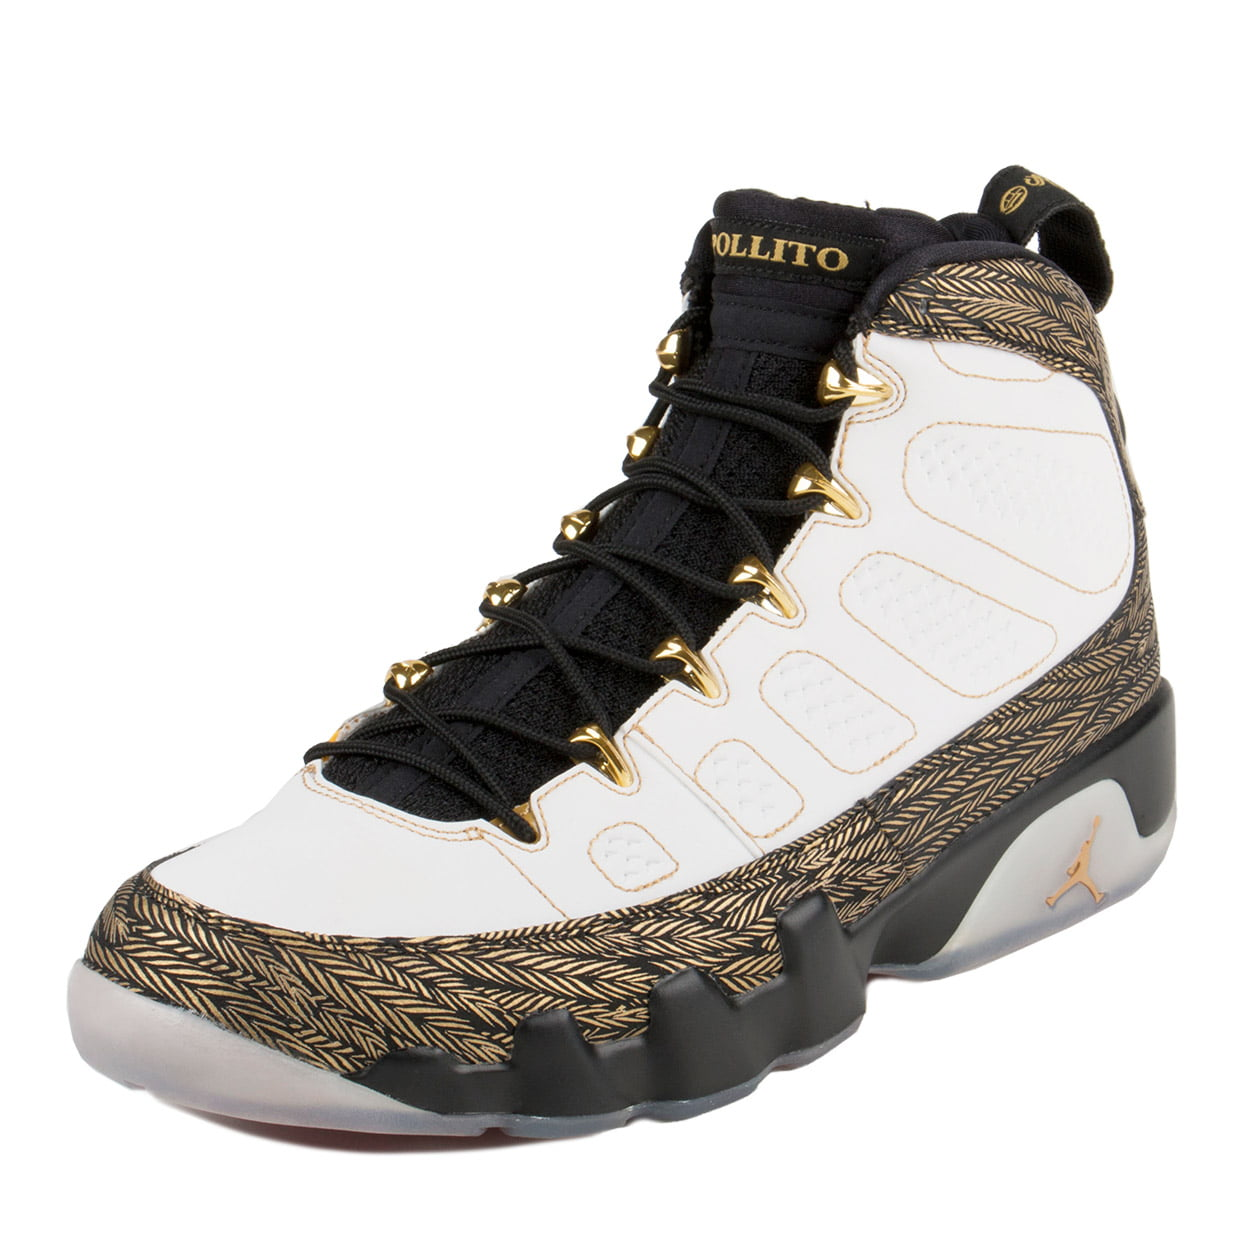 4ffee597495 ... greece nike nike mens air jordan 9 retro db doernbacher white gold black  580892 170 walmart